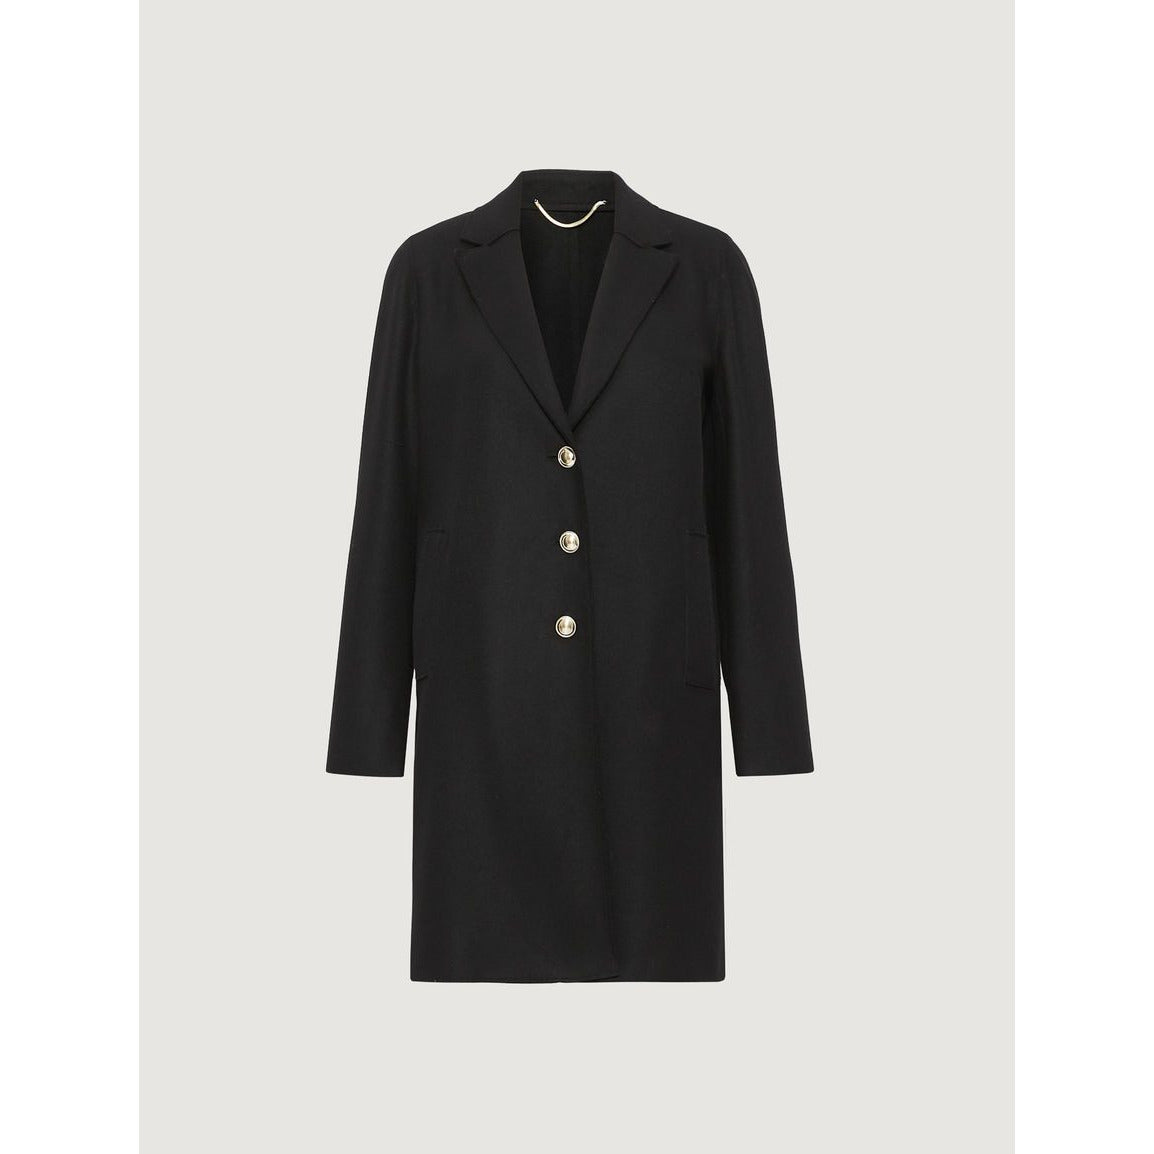 MARELLA ORVIETO WOOL MIX BUTTON FRONT COAT BLACK